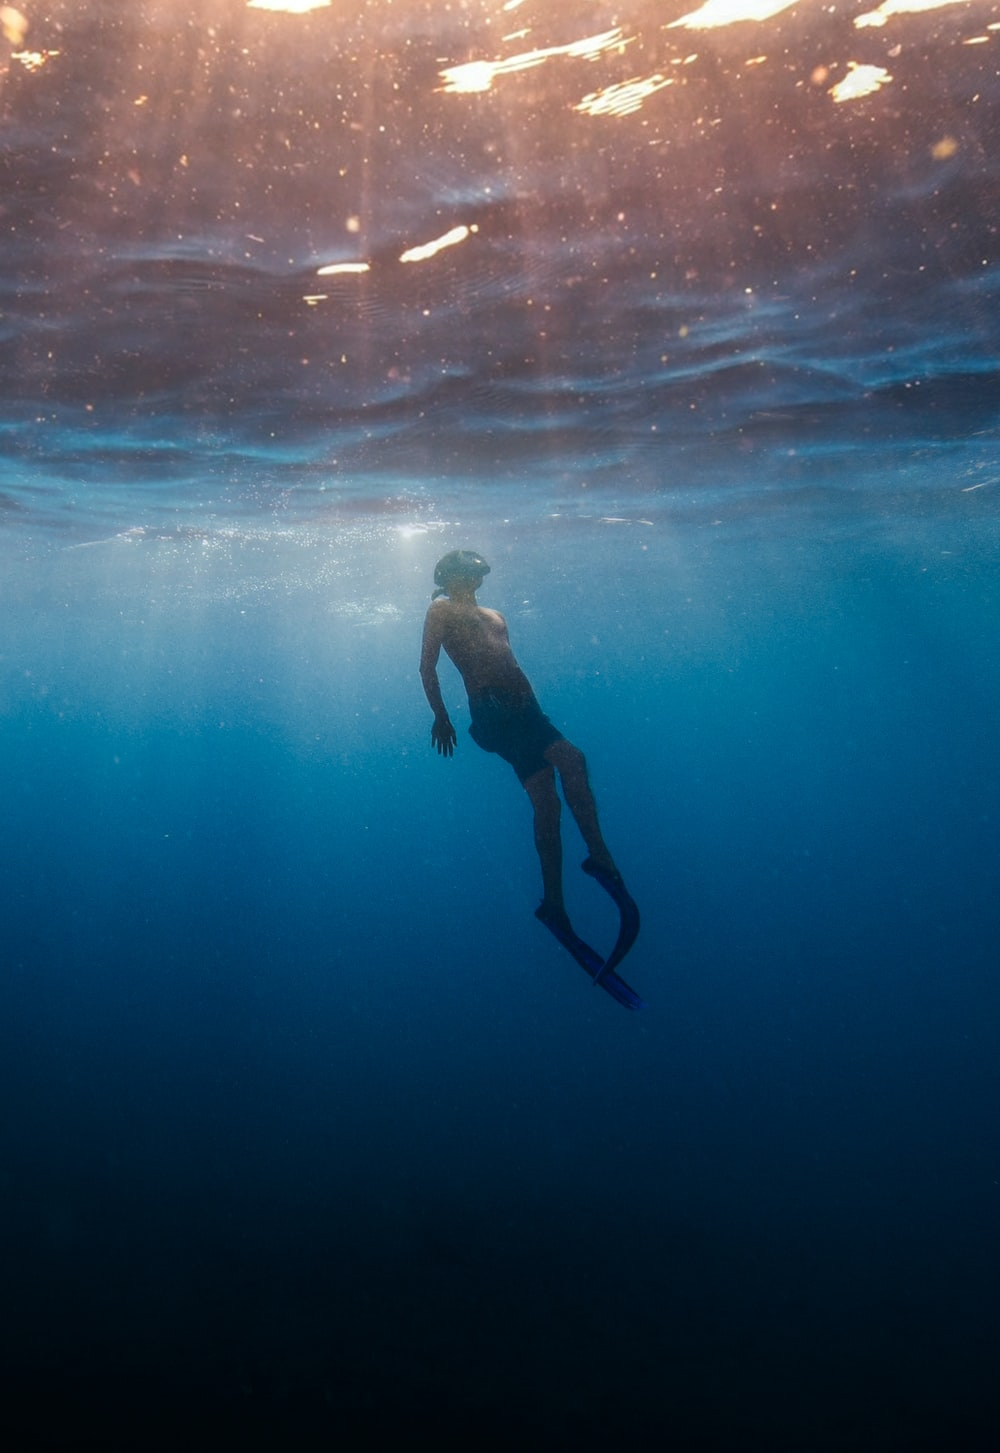 man in black shorts swimming under water